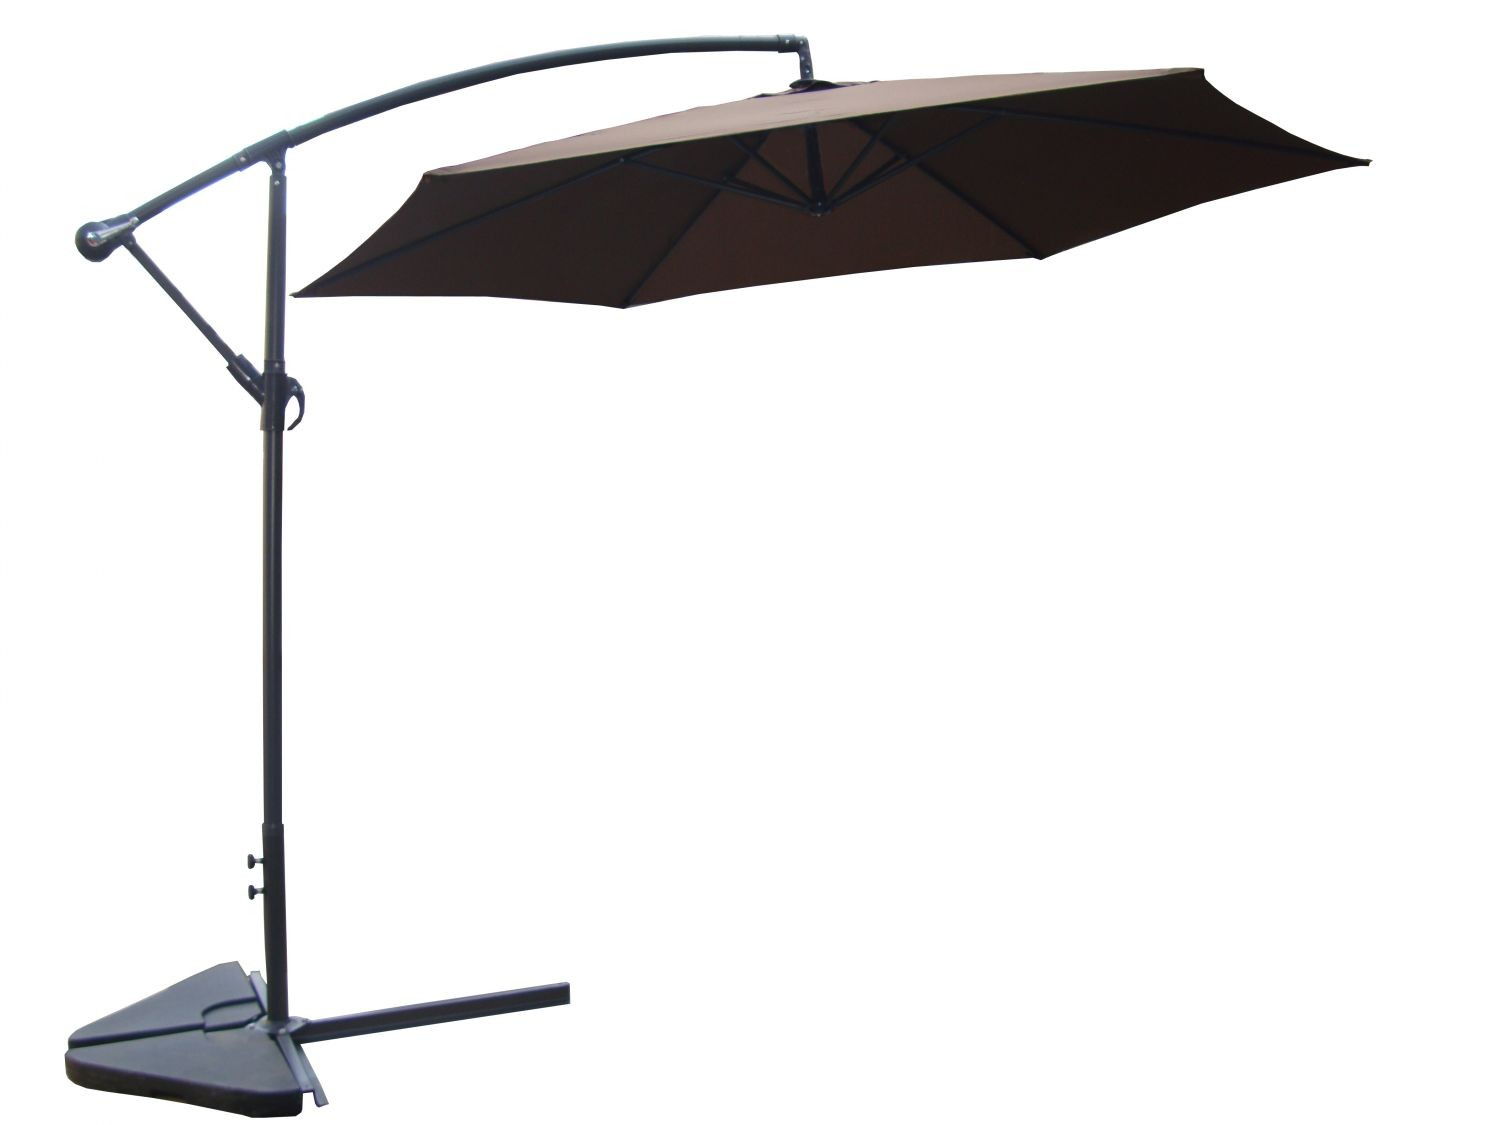 kelso chocolat parasol d port 3 m parasols parasols et chauffage d 39 ext rieur. Black Bedroom Furniture Sets. Home Design Ideas